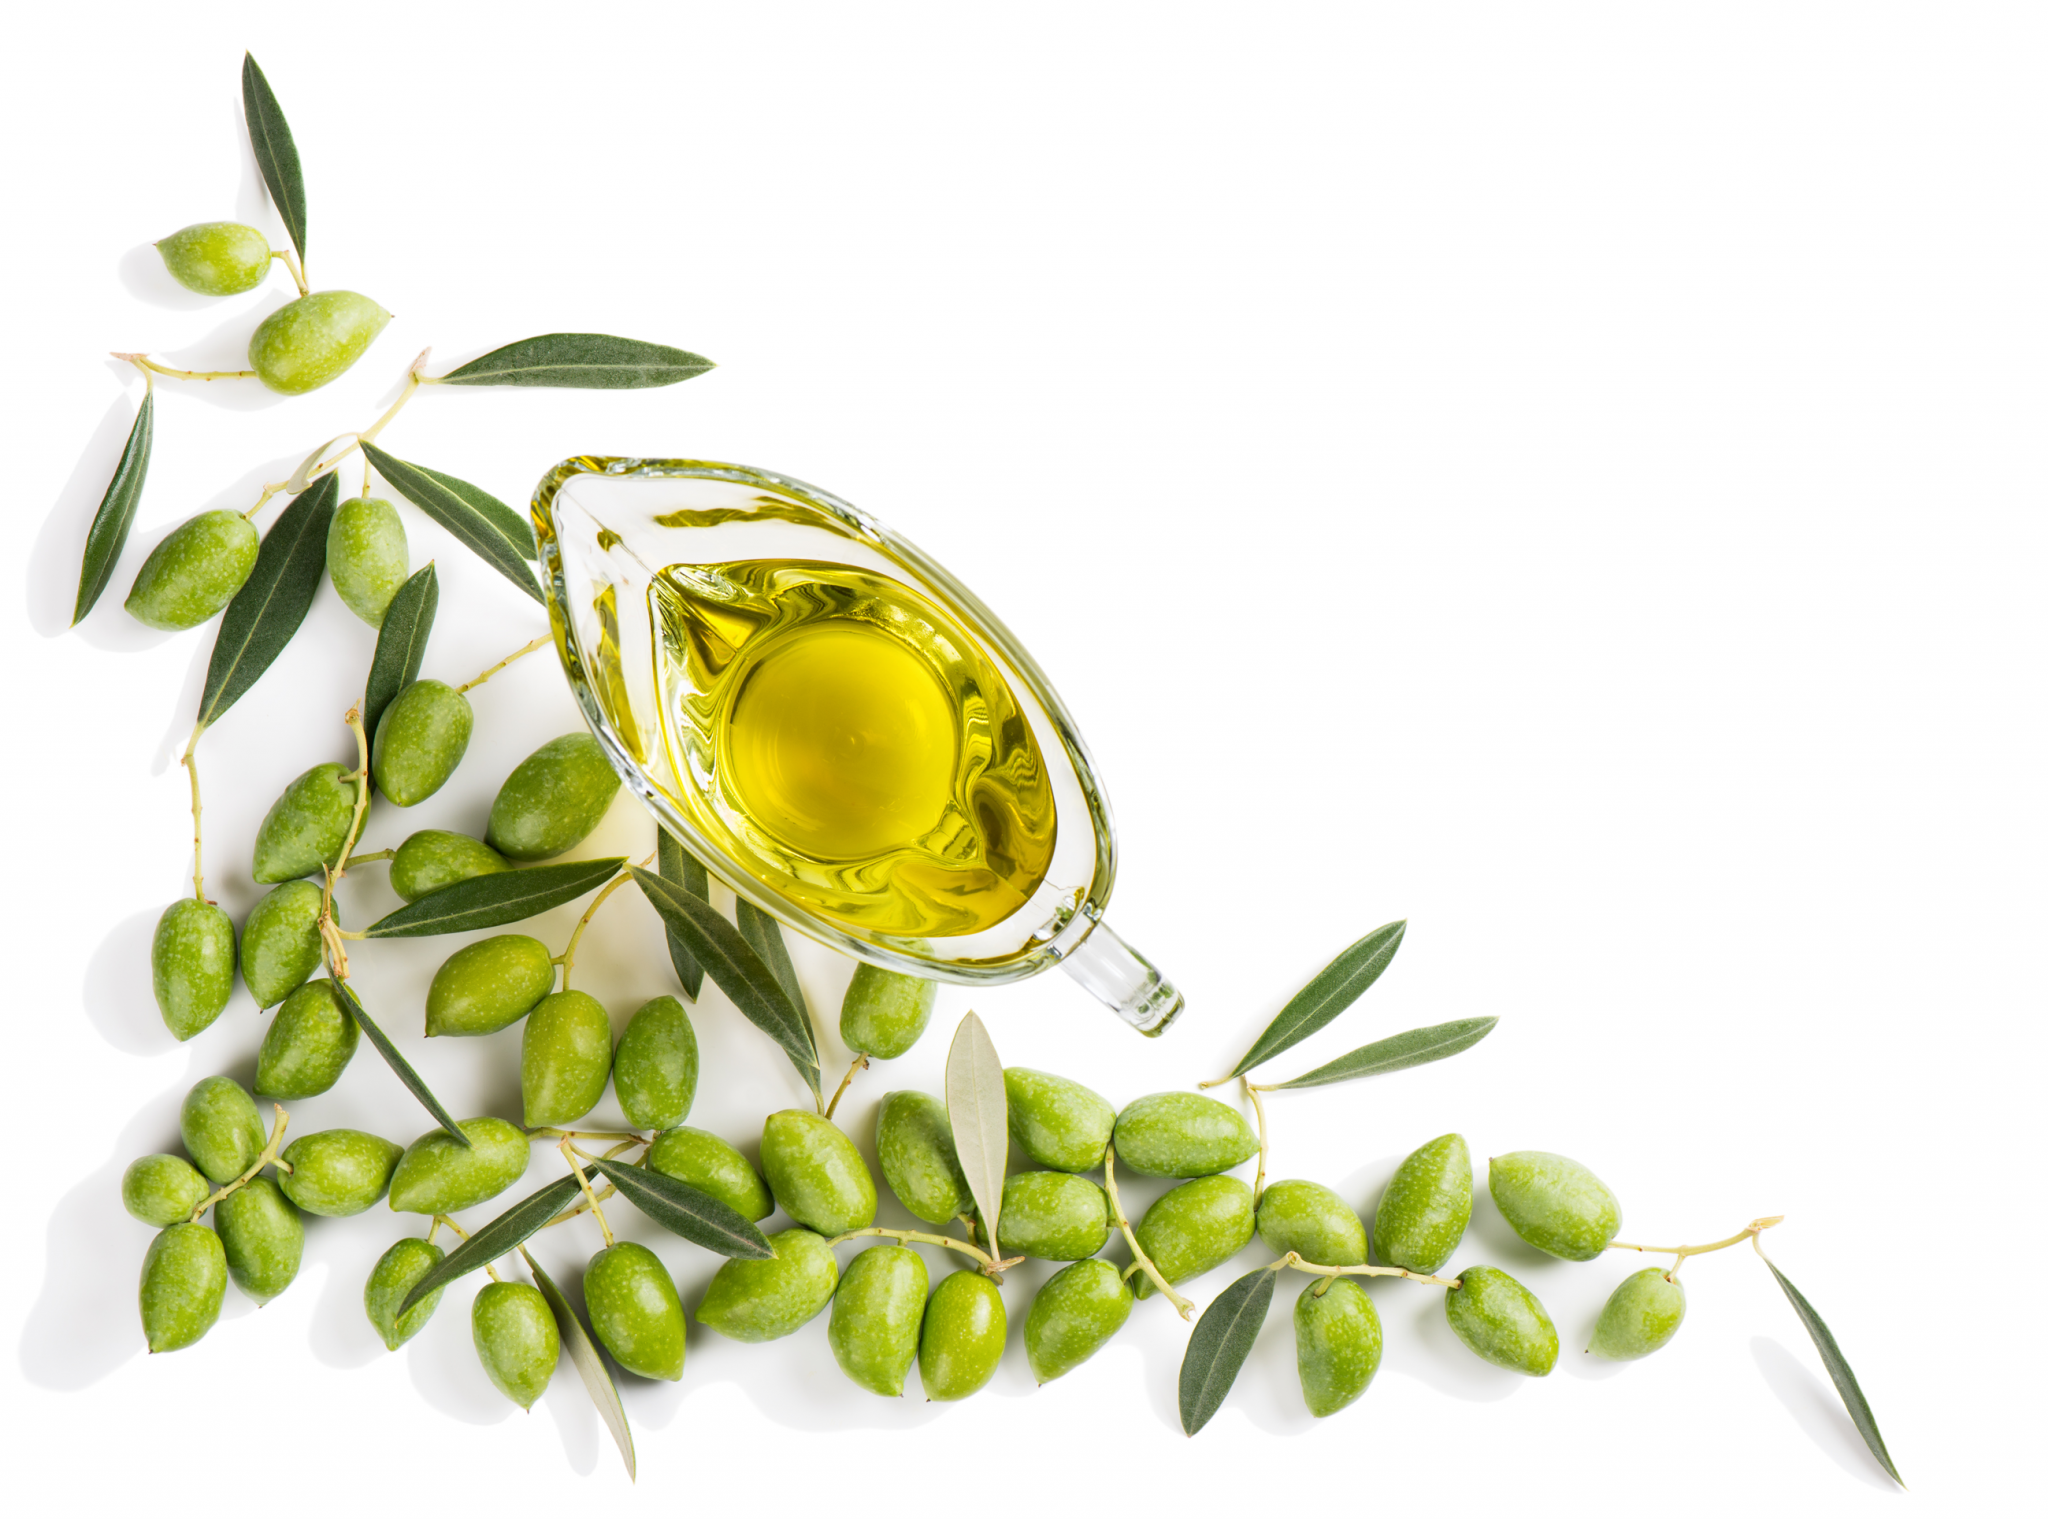 Sensory Analysis in Olive Oil – Negative Attributes